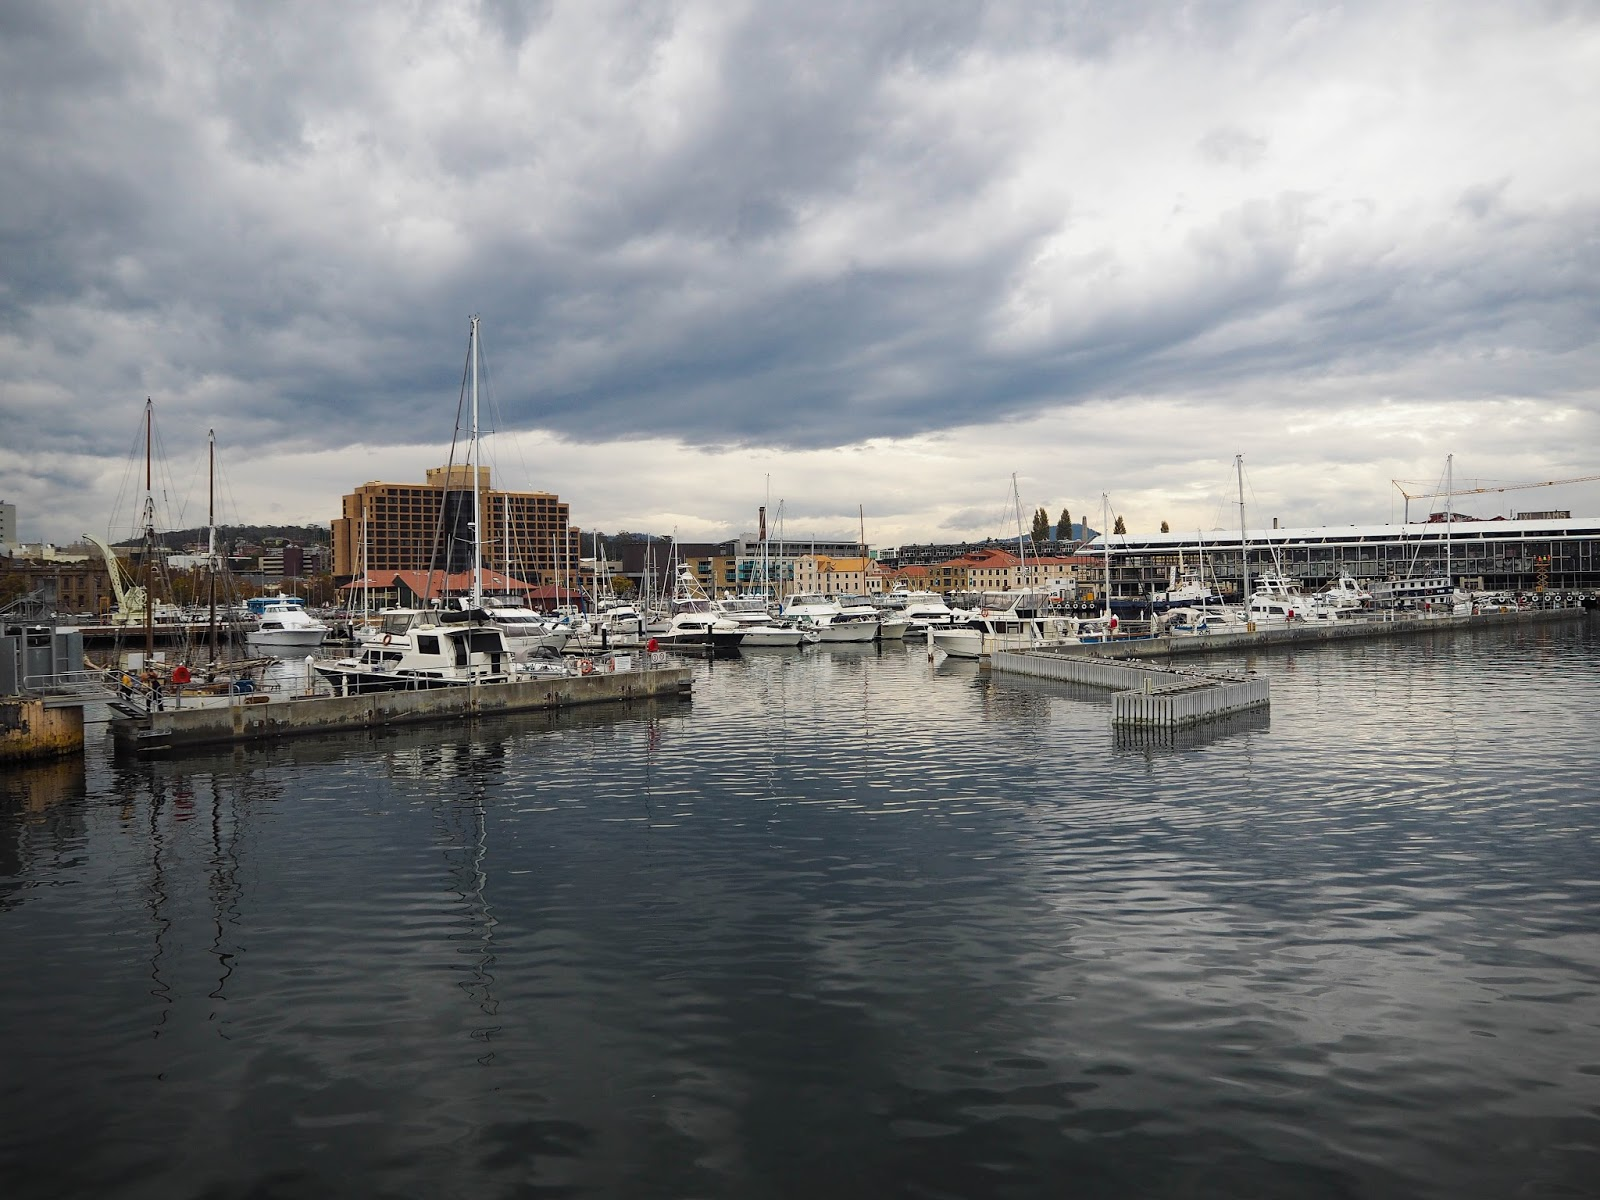 Hobart harbourside, Tasmania